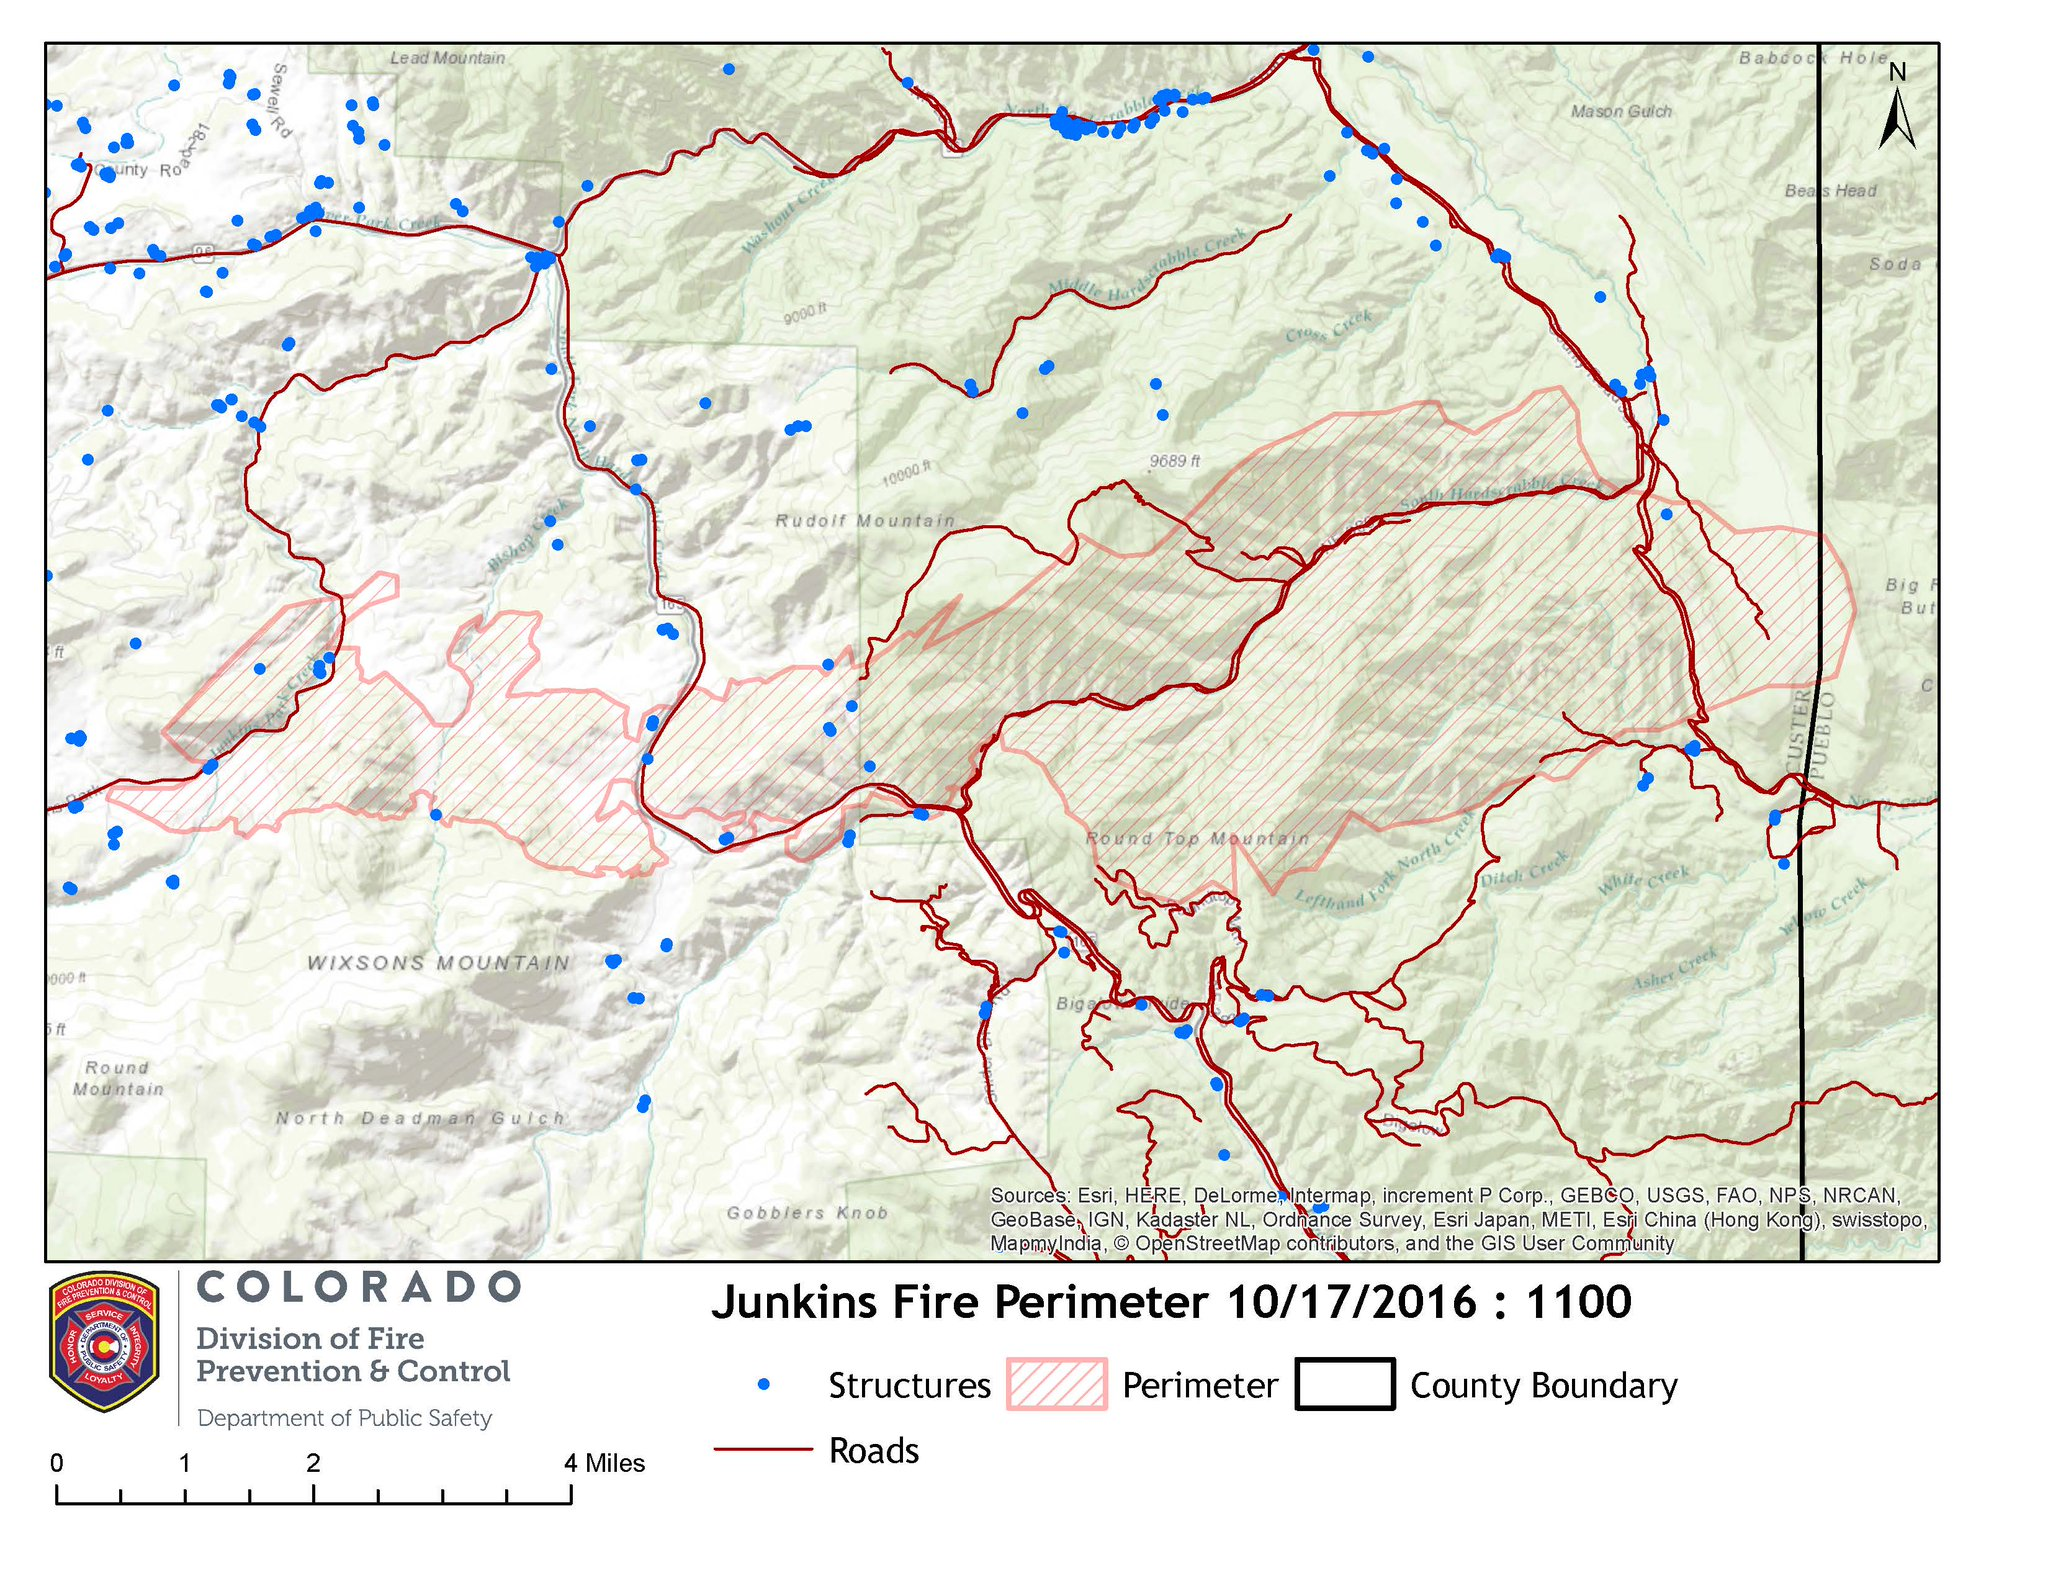 Photo: Map Of Junkins Fire, 11a Oct 17, Colo Div of Fire Prevention